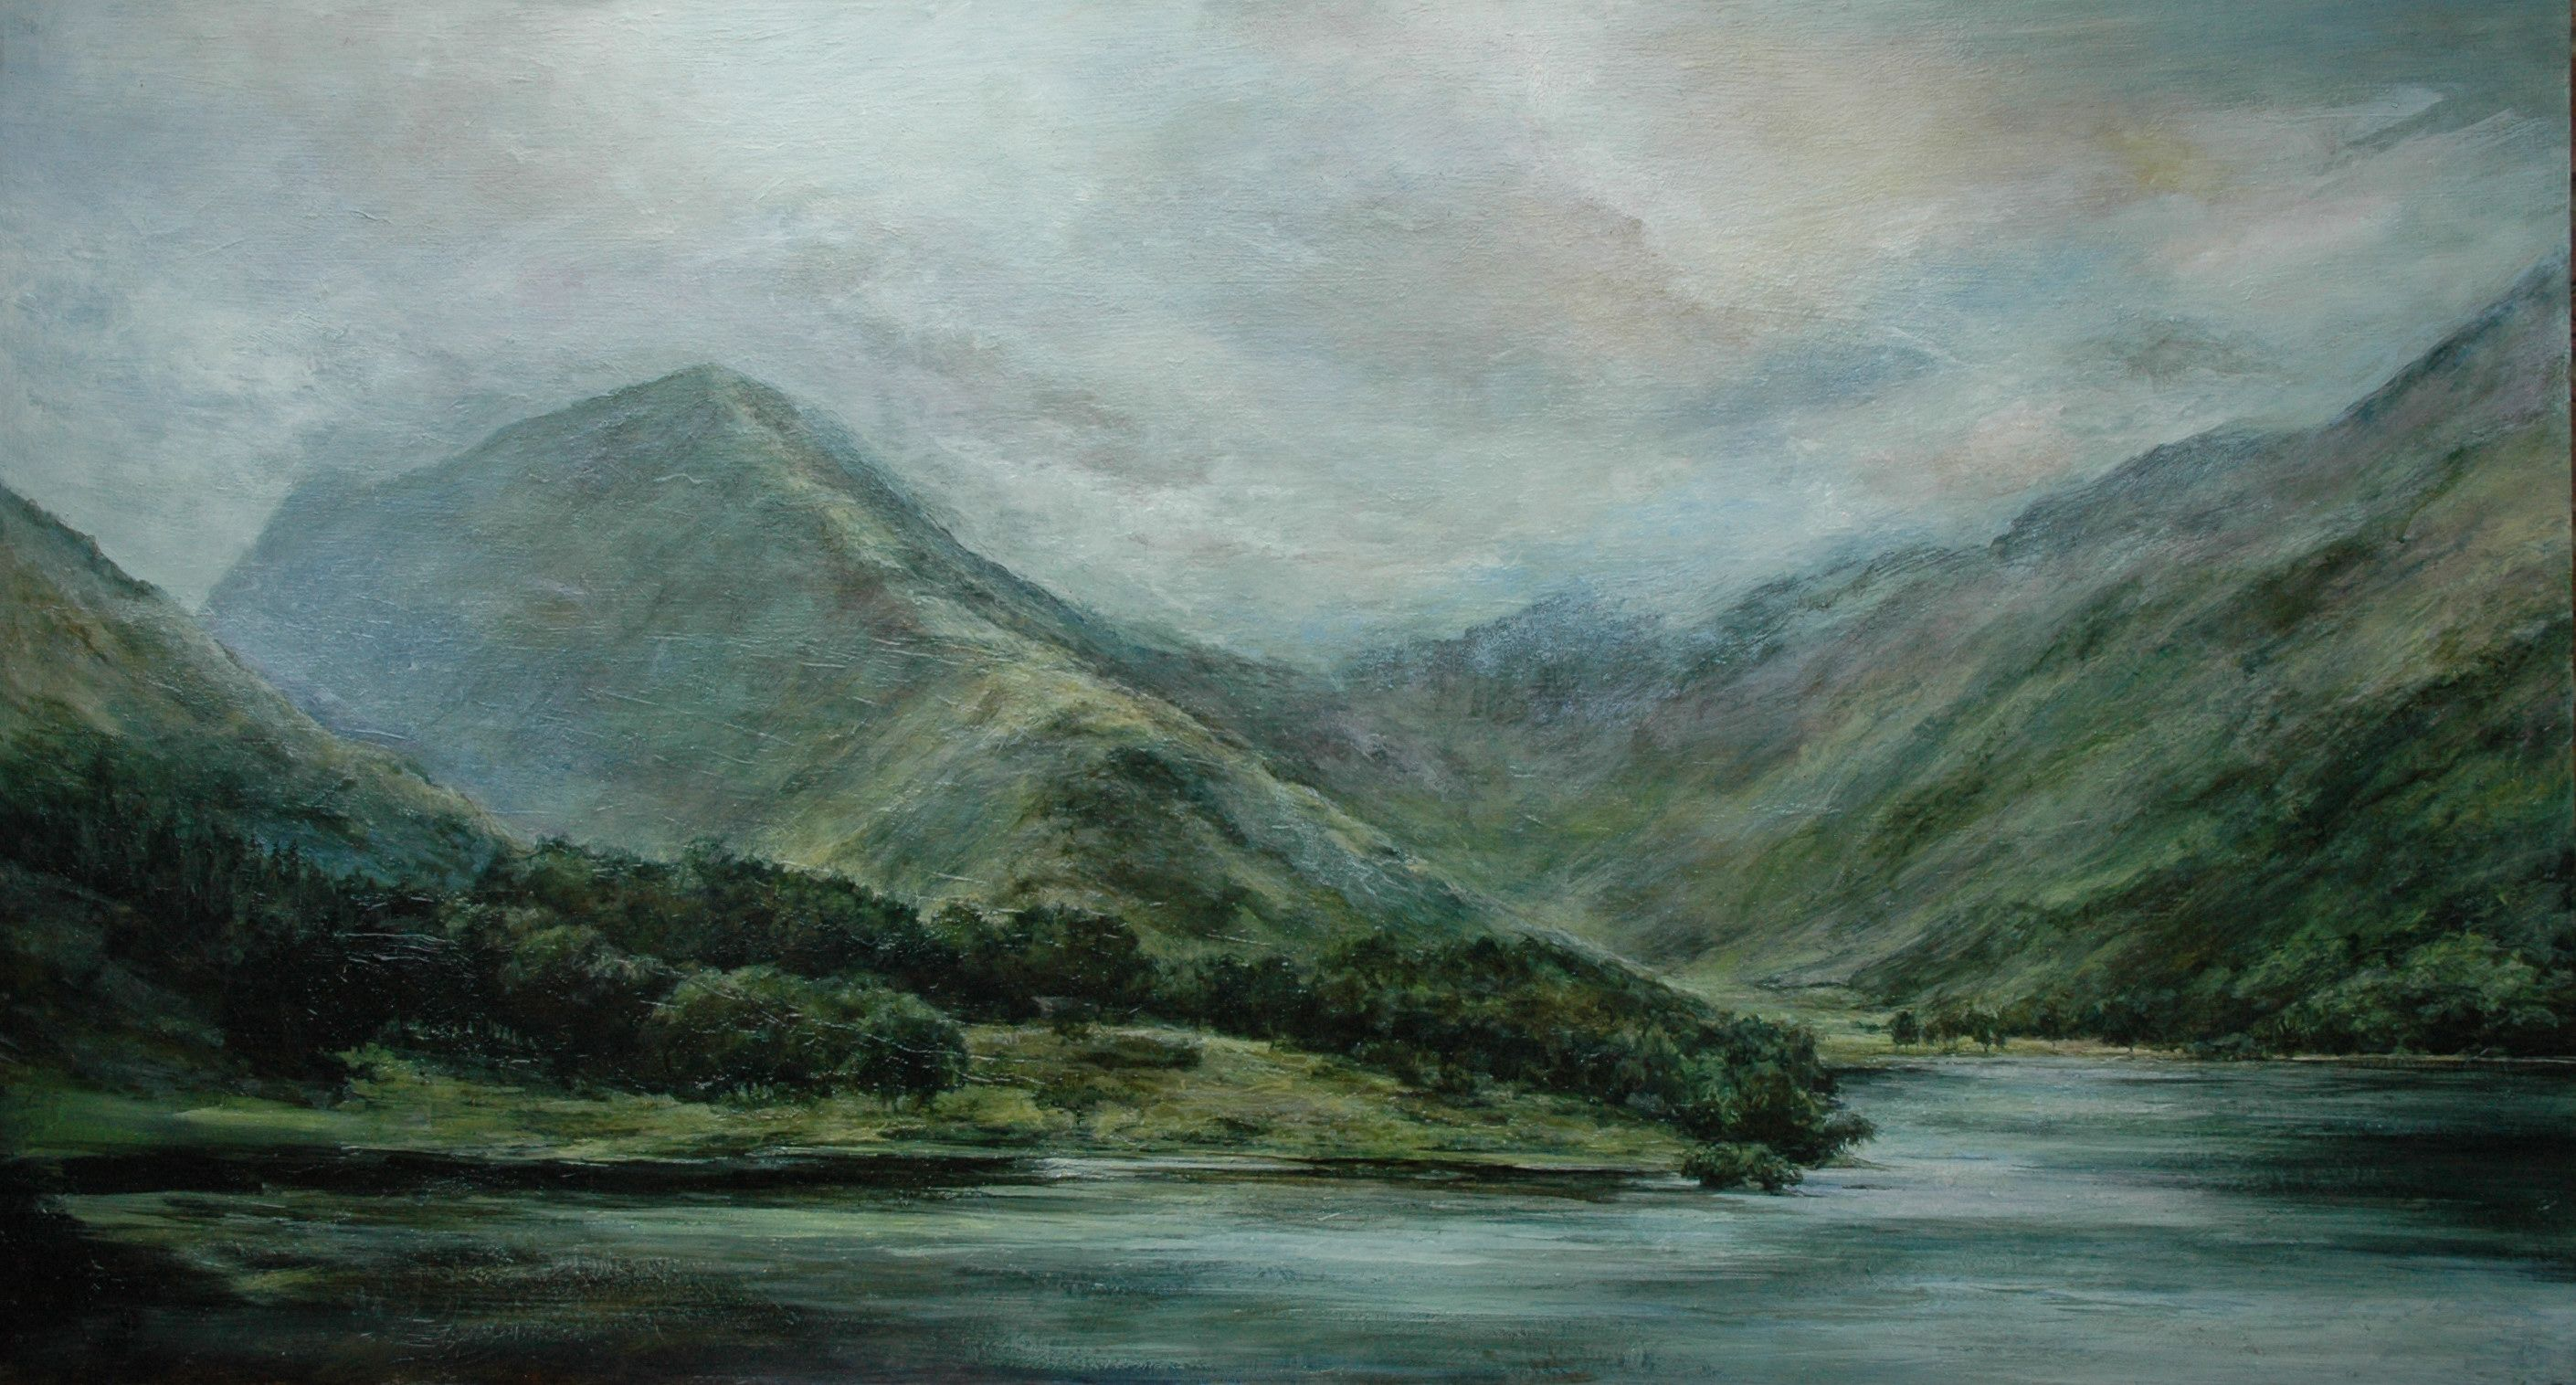 Oil Painting Of Butteremere In The Lake District By English Landscape Painter Sue Lawson Landscape Paintings Oil Painting Landscape Landscape